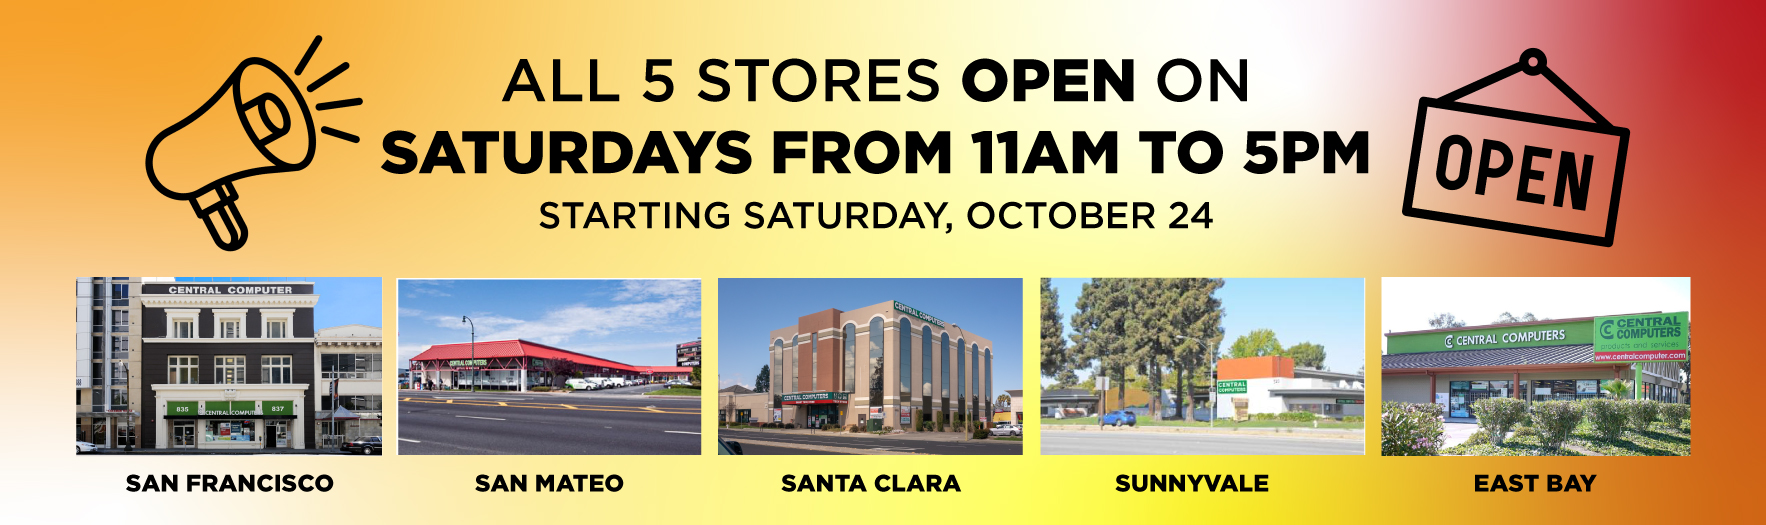 All 5 Stores Open on Saturdays From 11 am to 5 pm